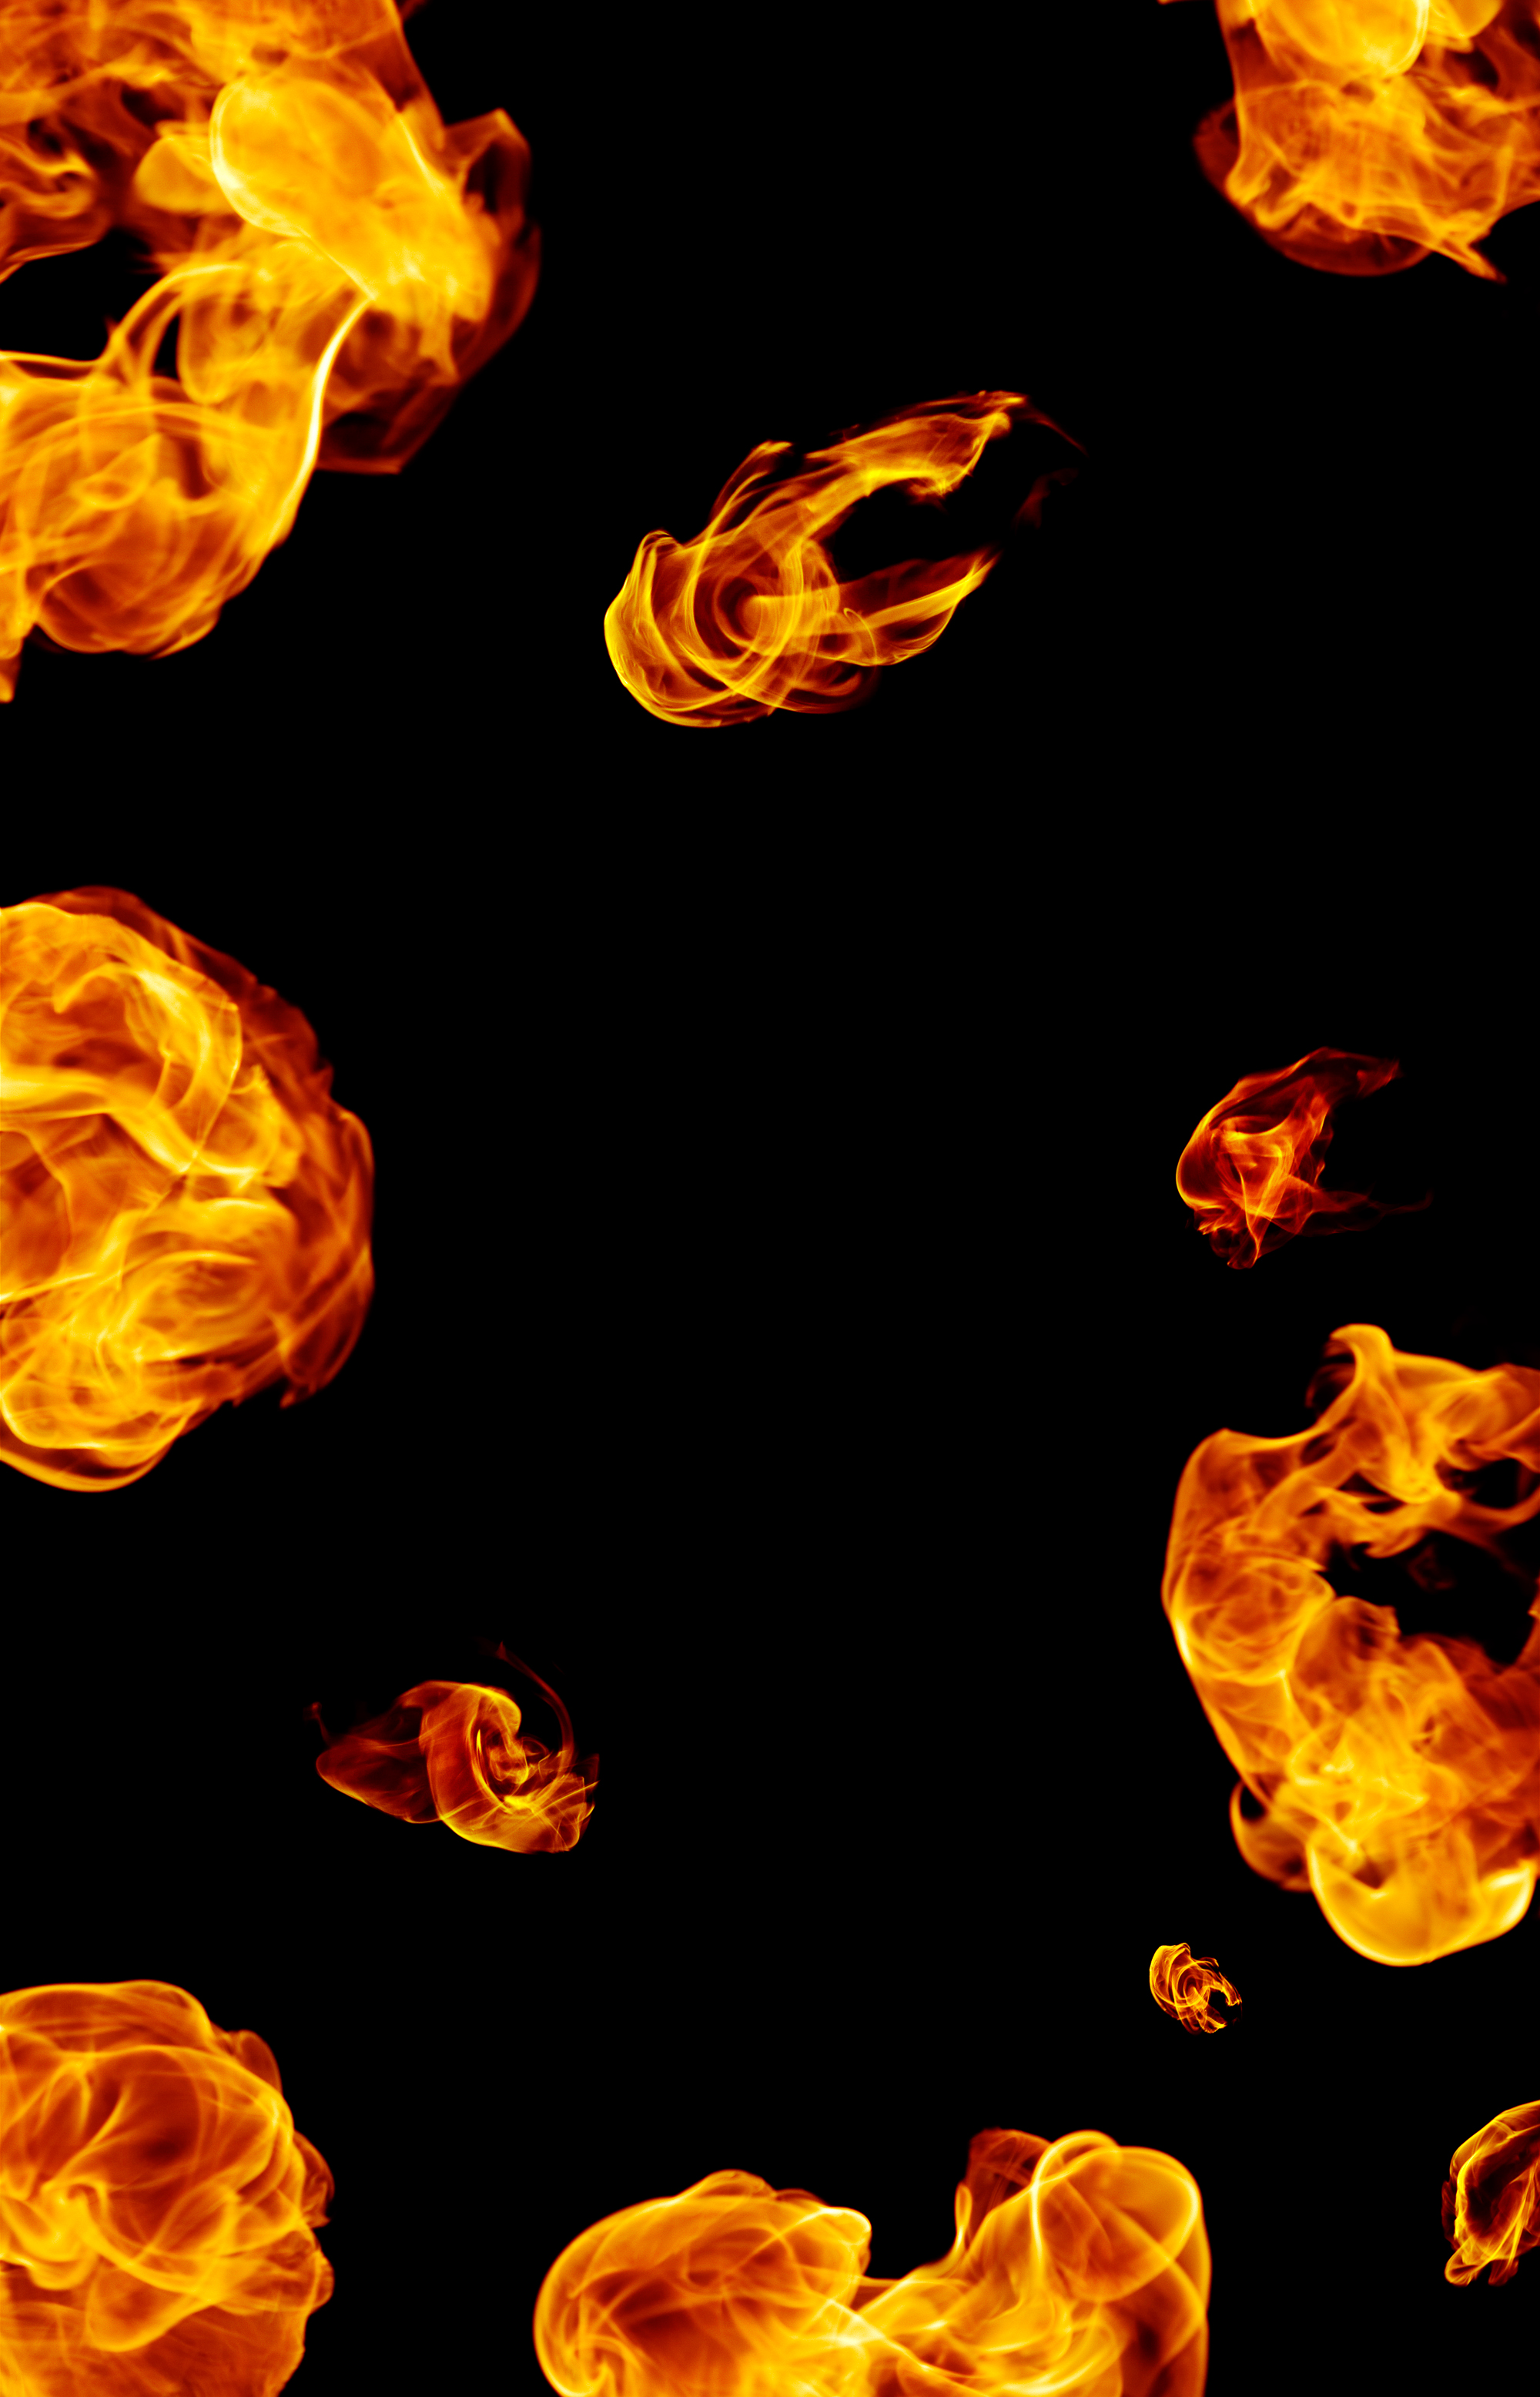 Explosion, Abstract, Hot, Fiery, Fire, HQ Photo